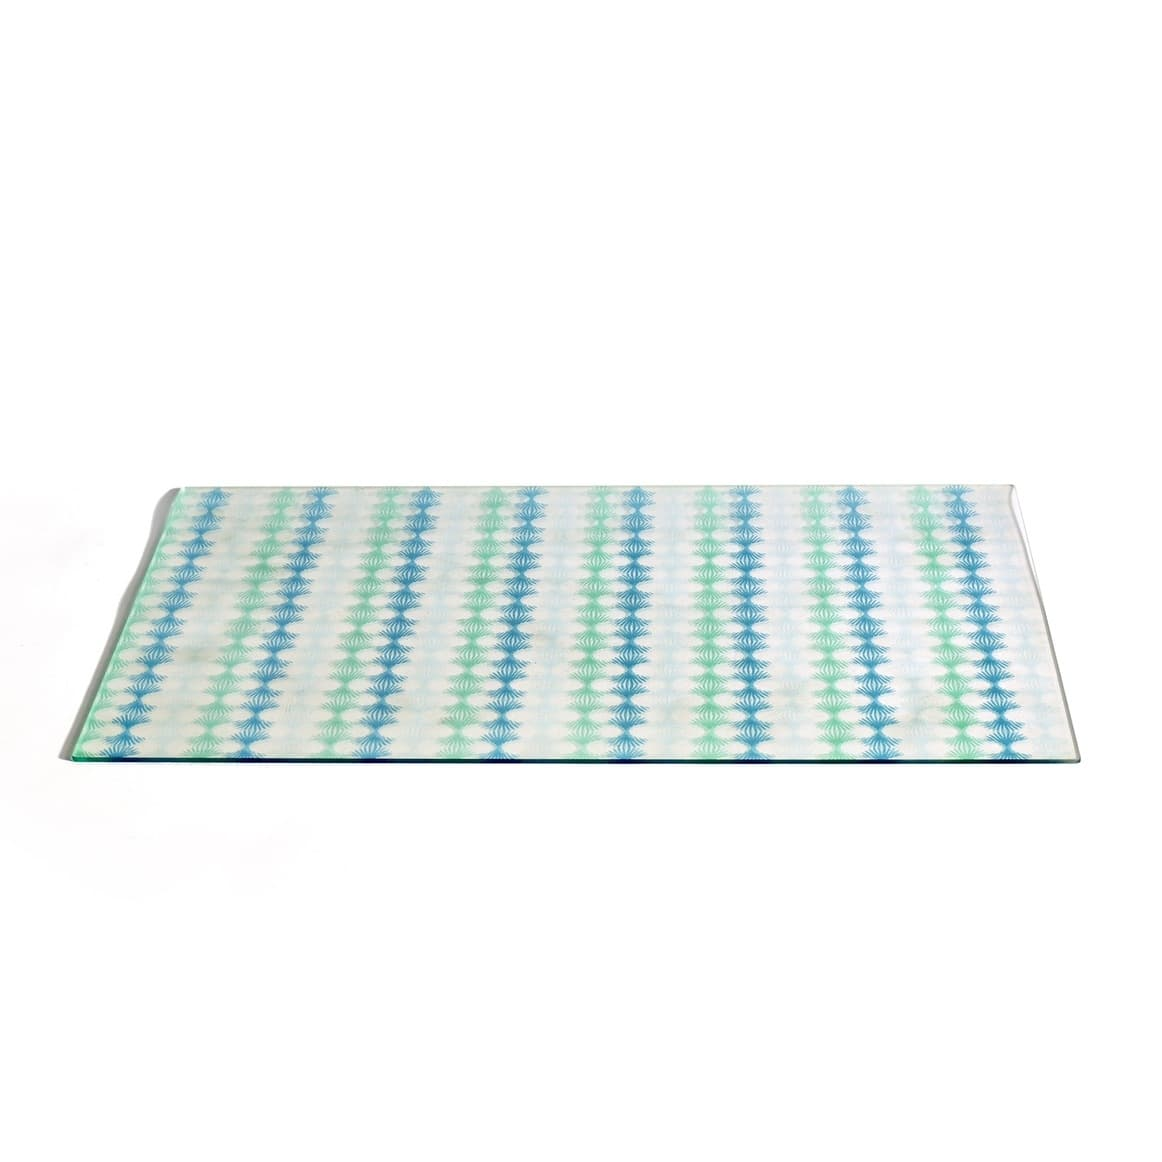 Acrylic Placemat Set of 4